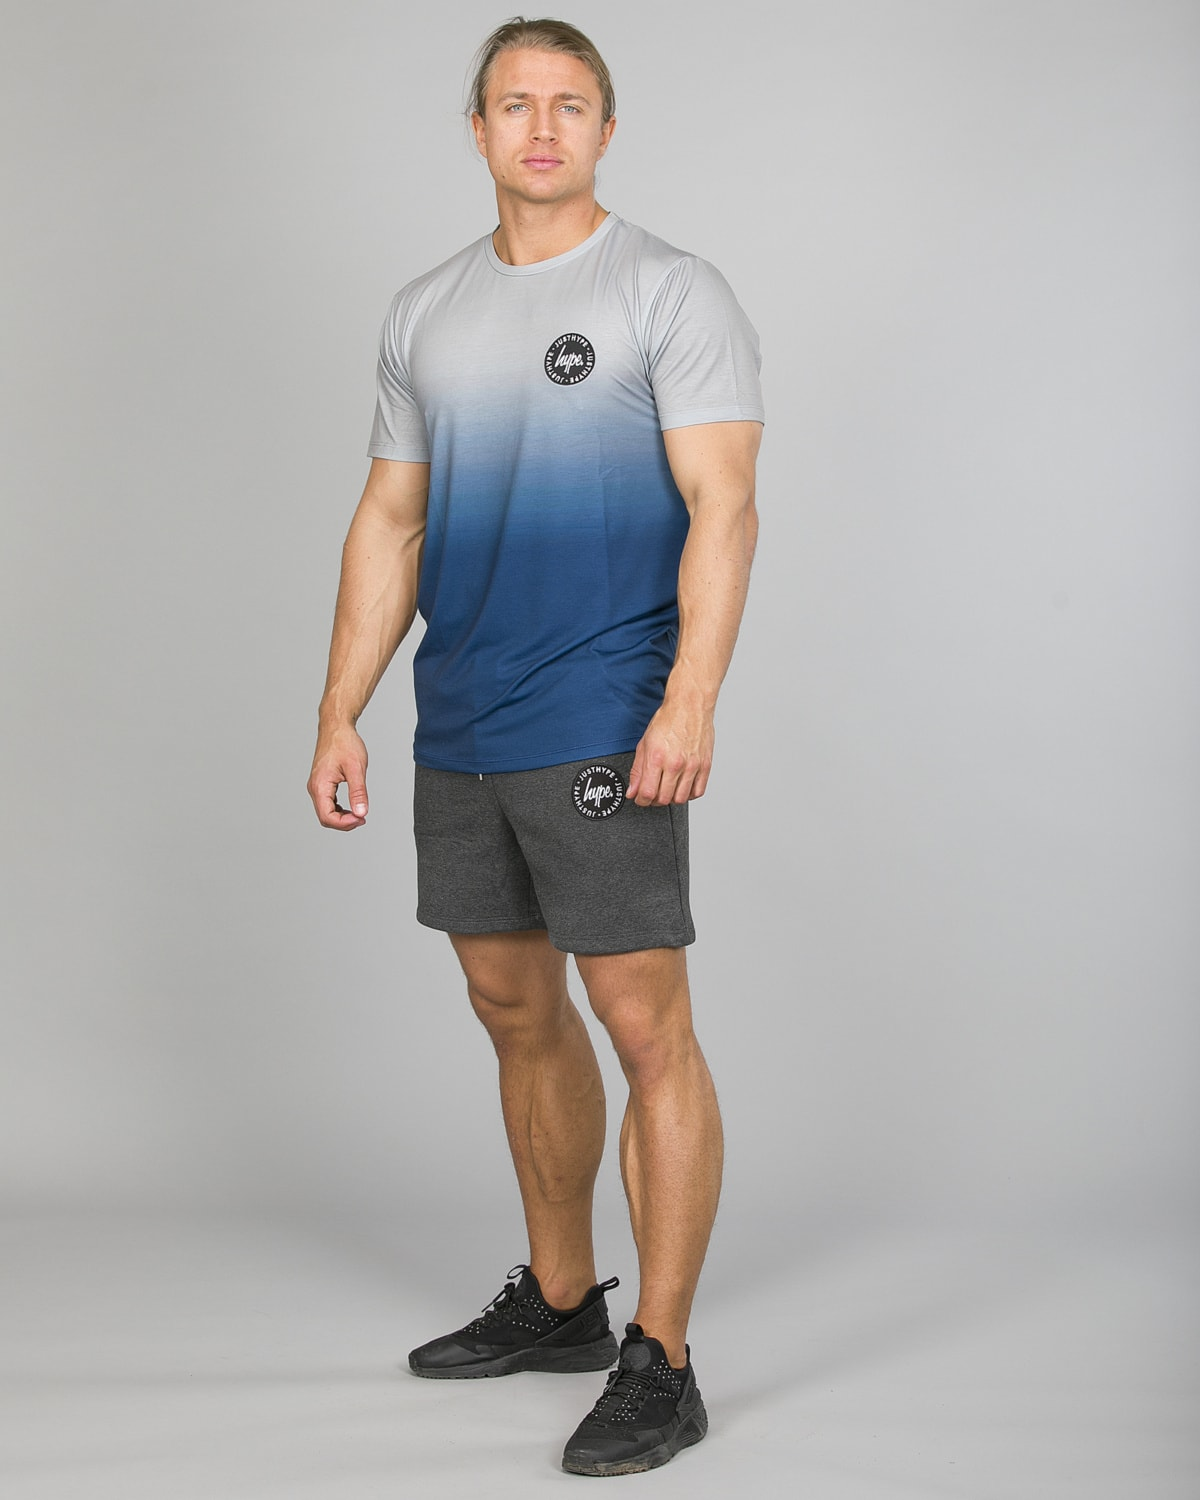 Hype Midnight Fade T-Shirt Men ss18210b Blue:Grey and Badge Shorts Men tm2ndrp16 Charcoal b